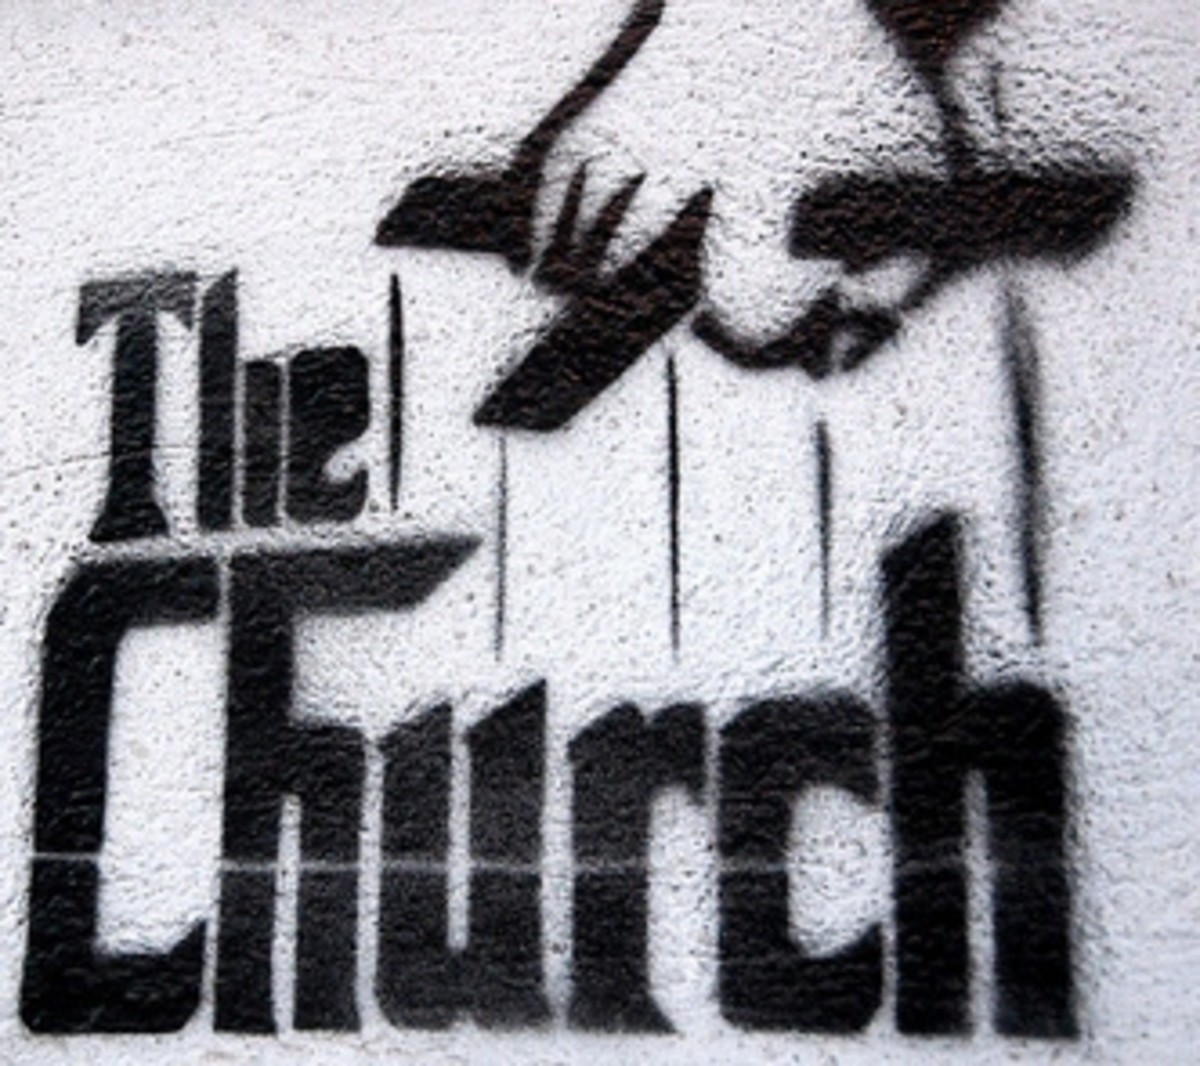 church-the-bondage-of-human-works